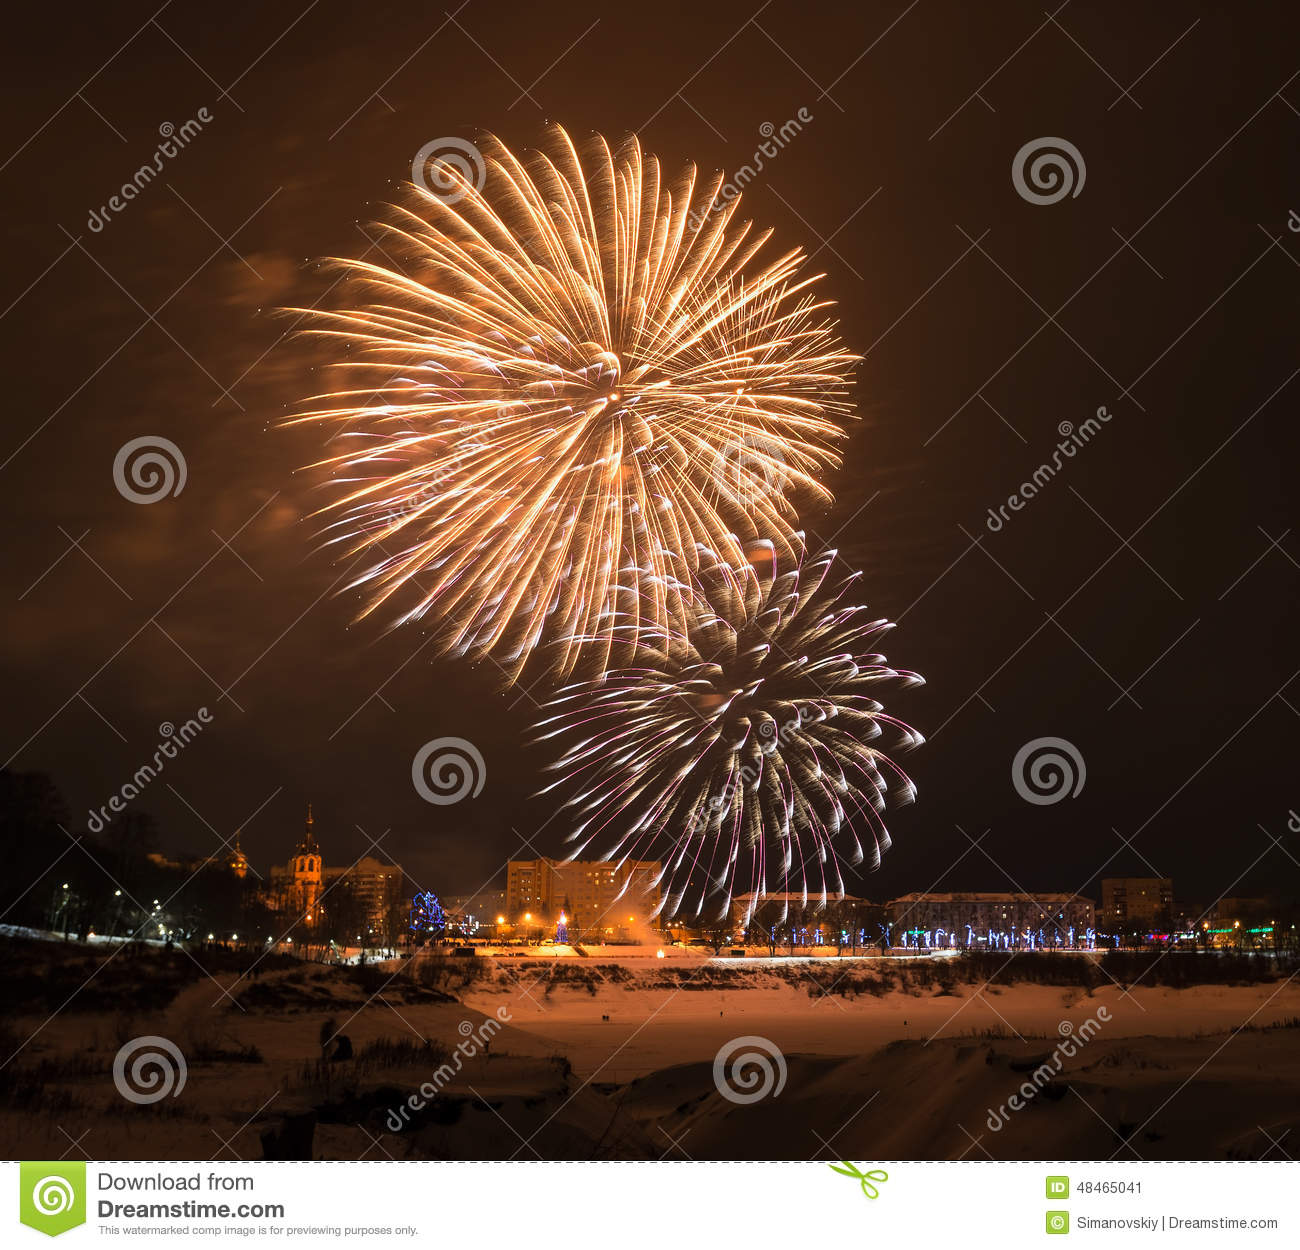 Denver New Years Fireworks6 By Niel4: New Year's 2015 Eve Fireworks. Stock Photo